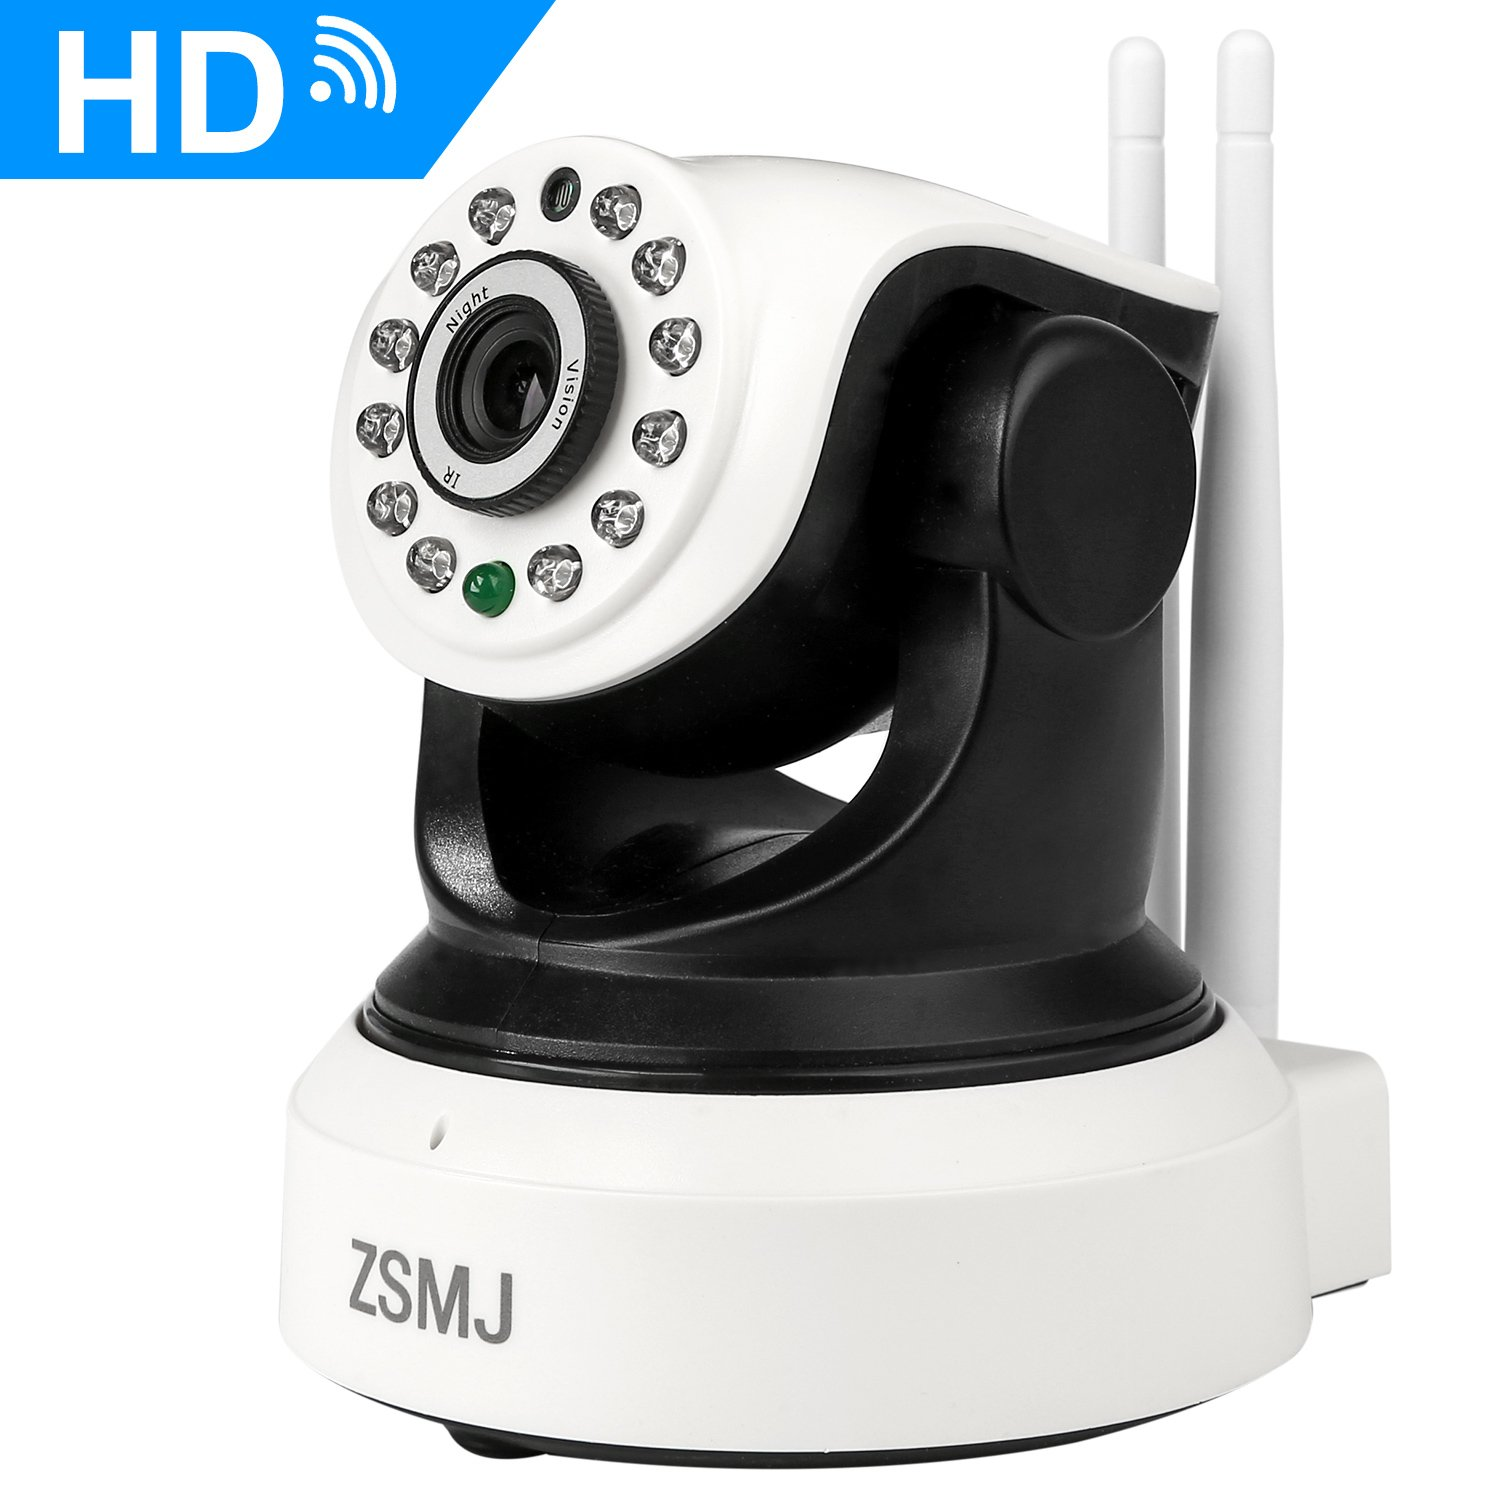 ZSMJ Wireless Surveillance Camera Home Security Camera System Wifi 720P HD - Plug/Play Pan/Tilt Night Vision for Parents Baby Pet Guarding Wider HD Vision Indoor